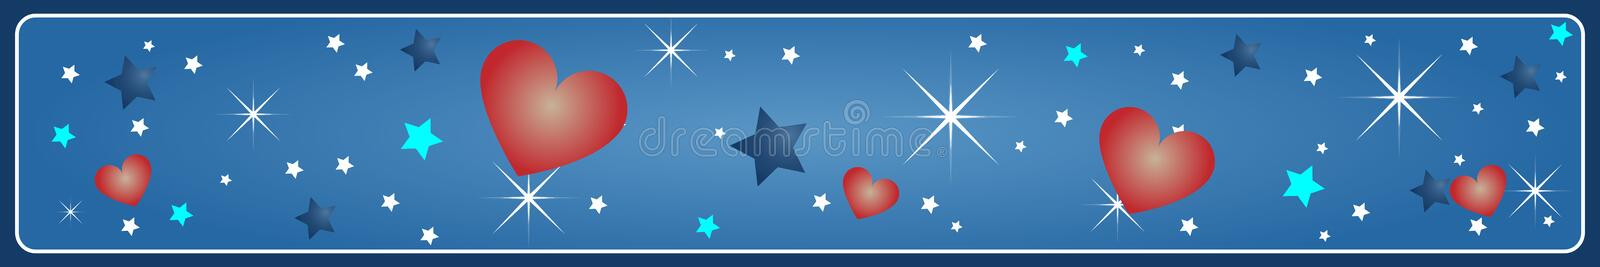 Valentine's banner royalty free stock photography